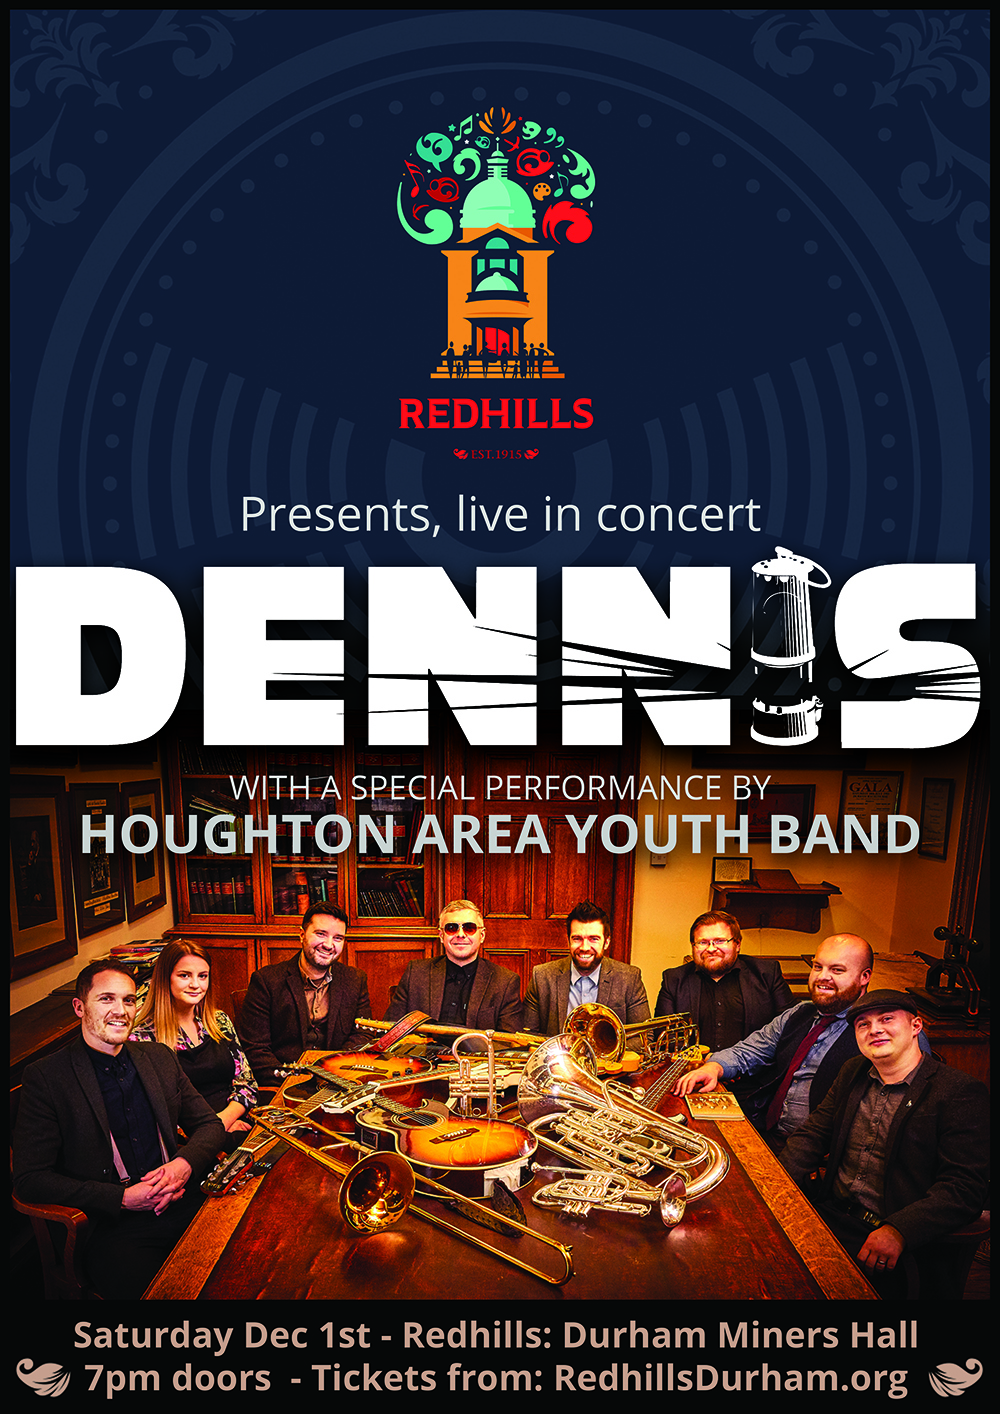 DENNIS - live in concert + Houghton Area Youth Band @ Redhills: Durham Miners Hall